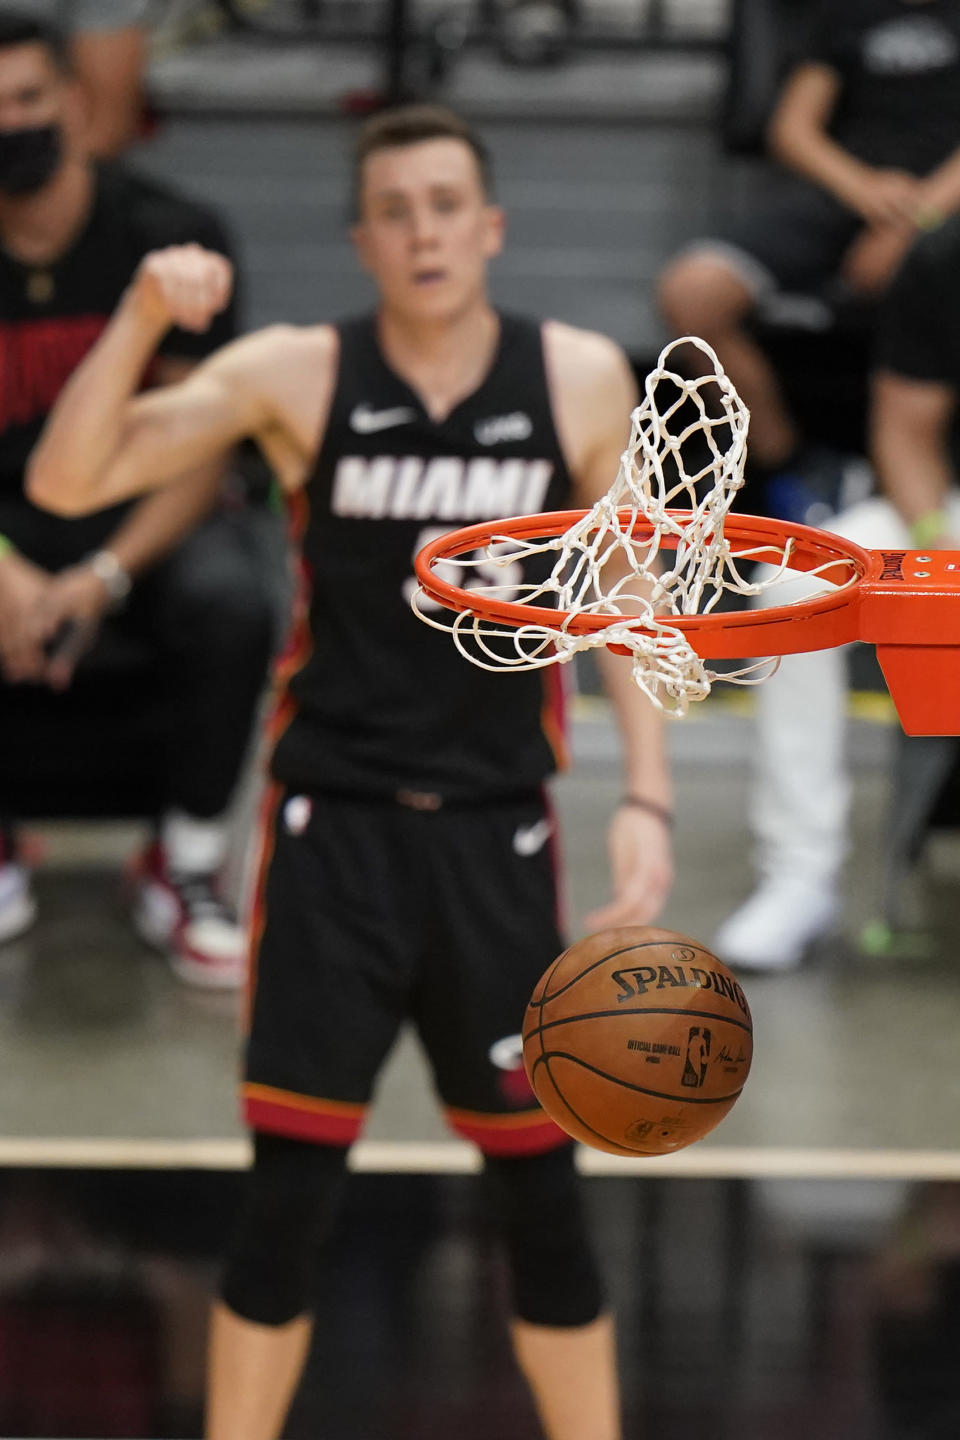 Miami Heat forward Duncan Robinson, rear, reacts as his three-point shot goes in during the second half of an NBA basketball game against the Dallas Mavericks, Tuesday, May 4, 2021, in Miami. (AP Photo/Wilfredo Lee)